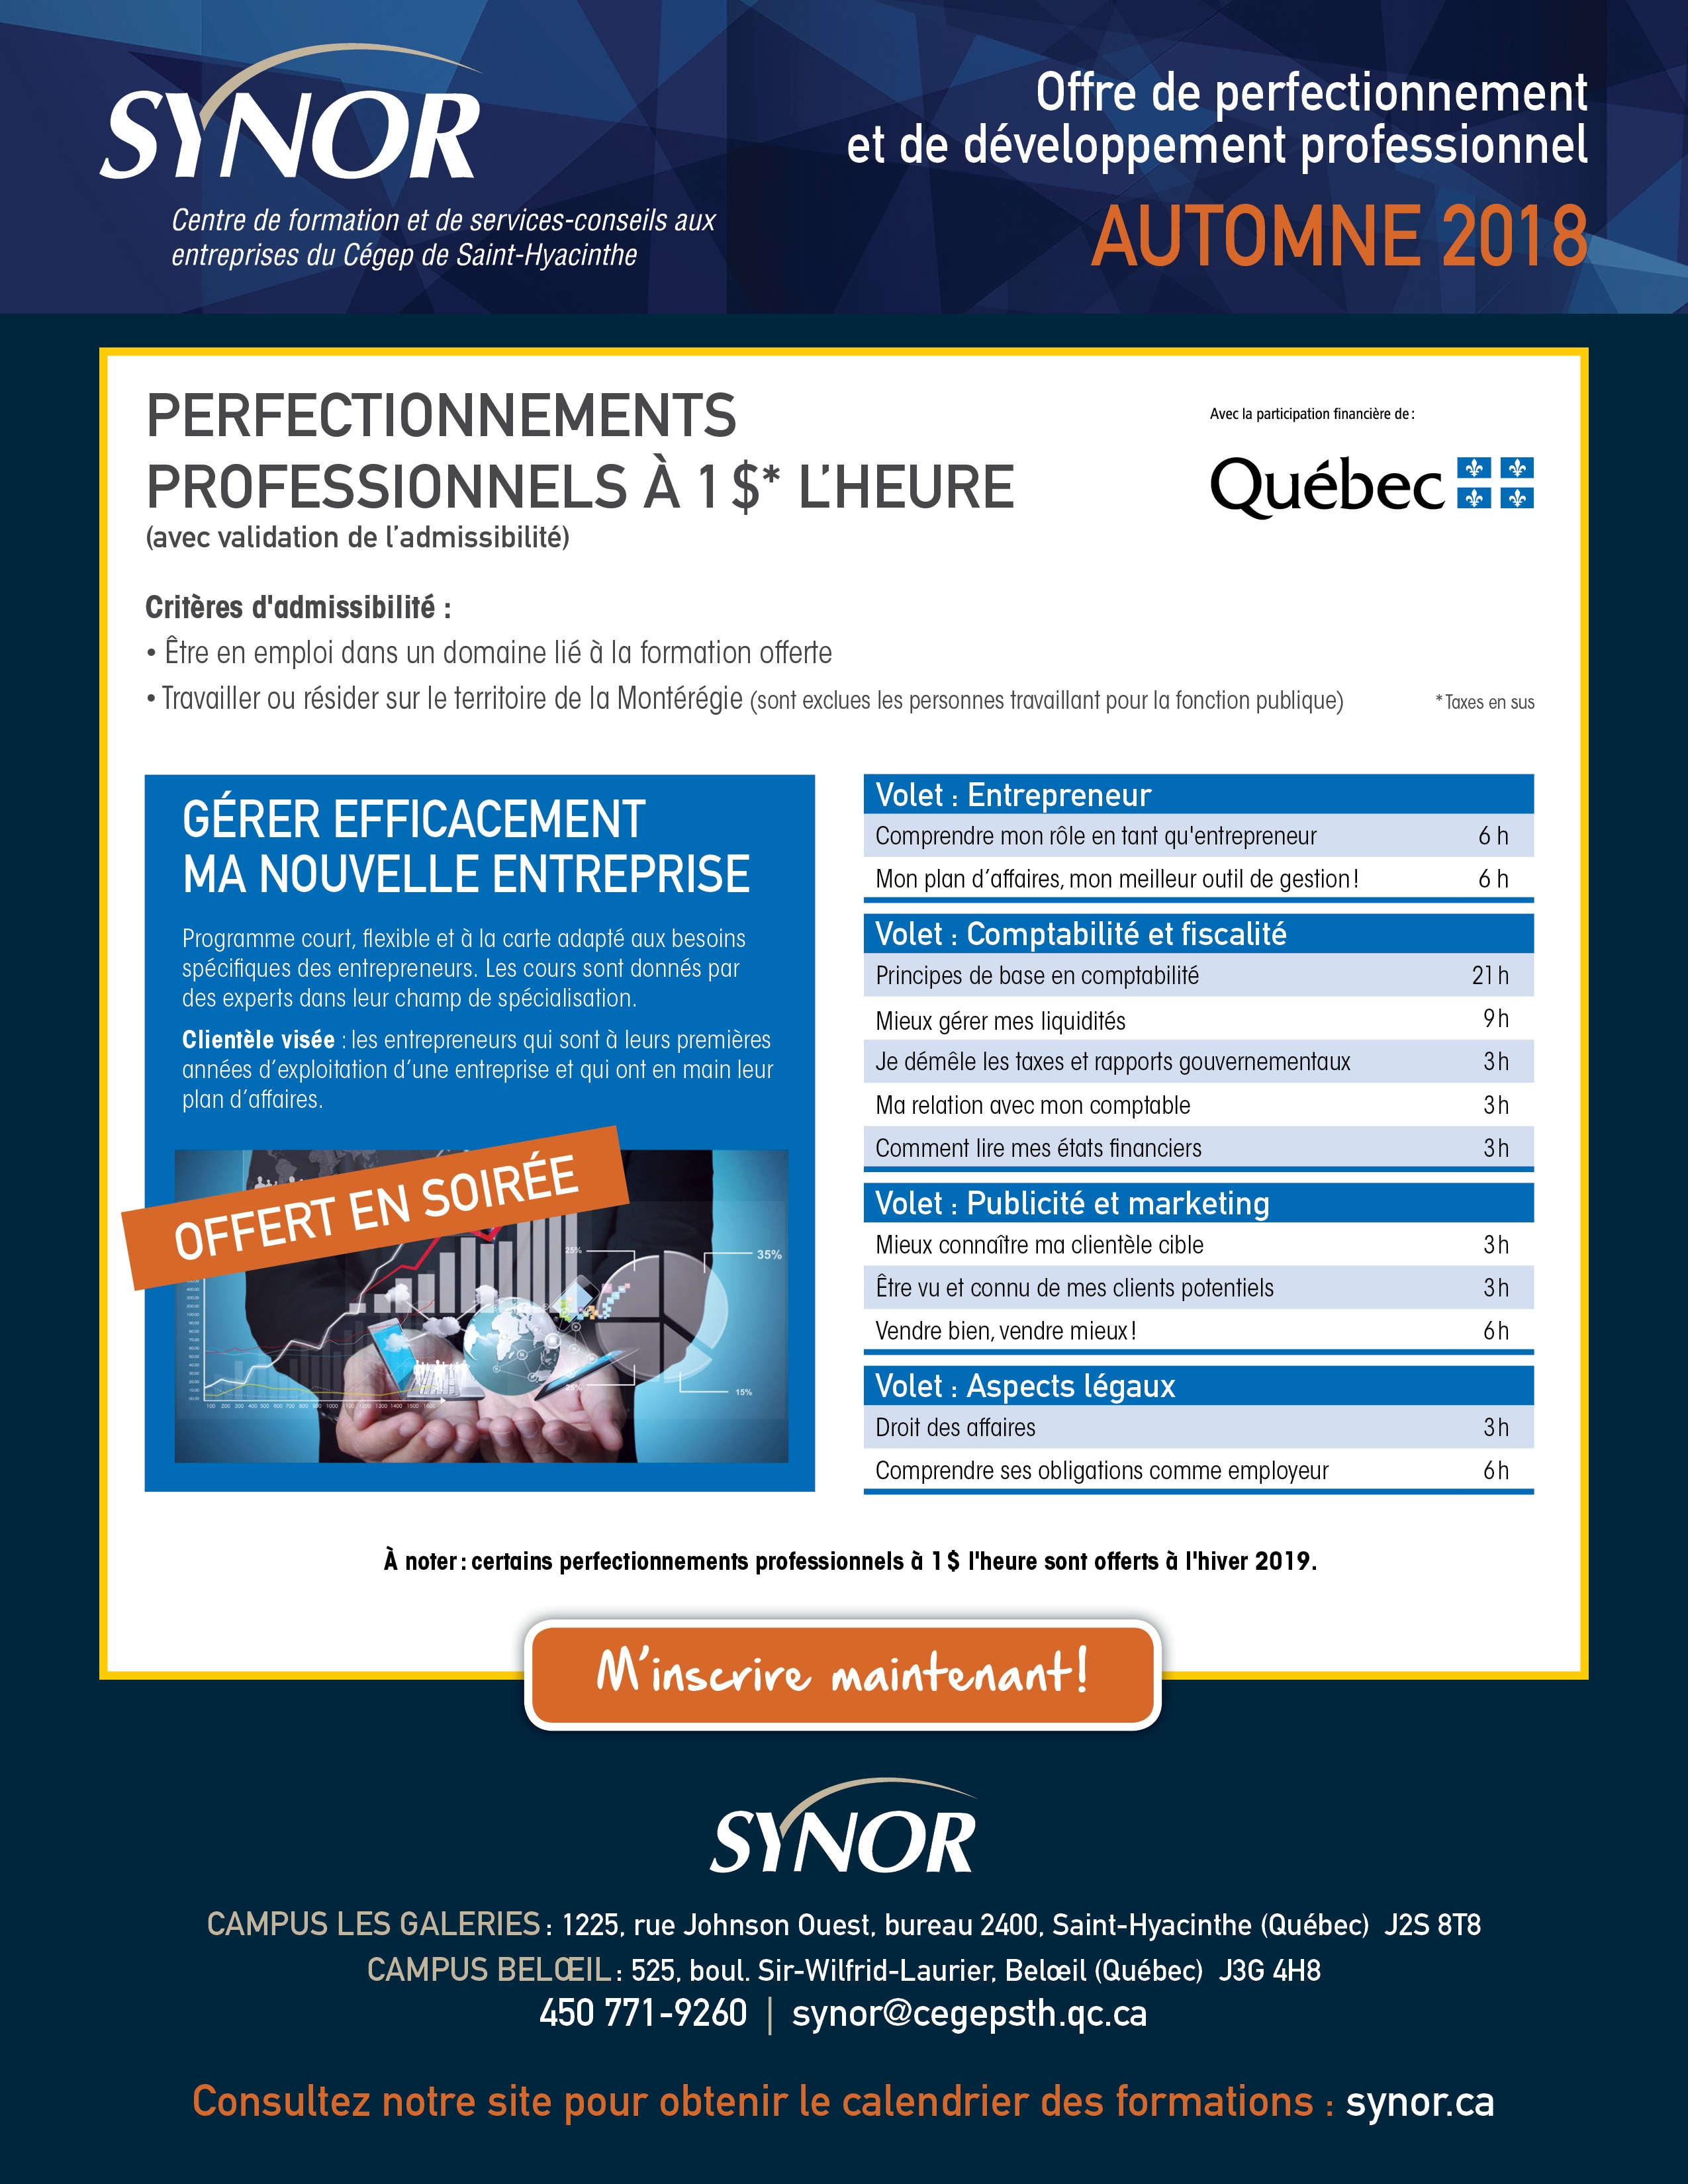 OffreCoursA18 - SYNOR-perfectionnement-entreprise